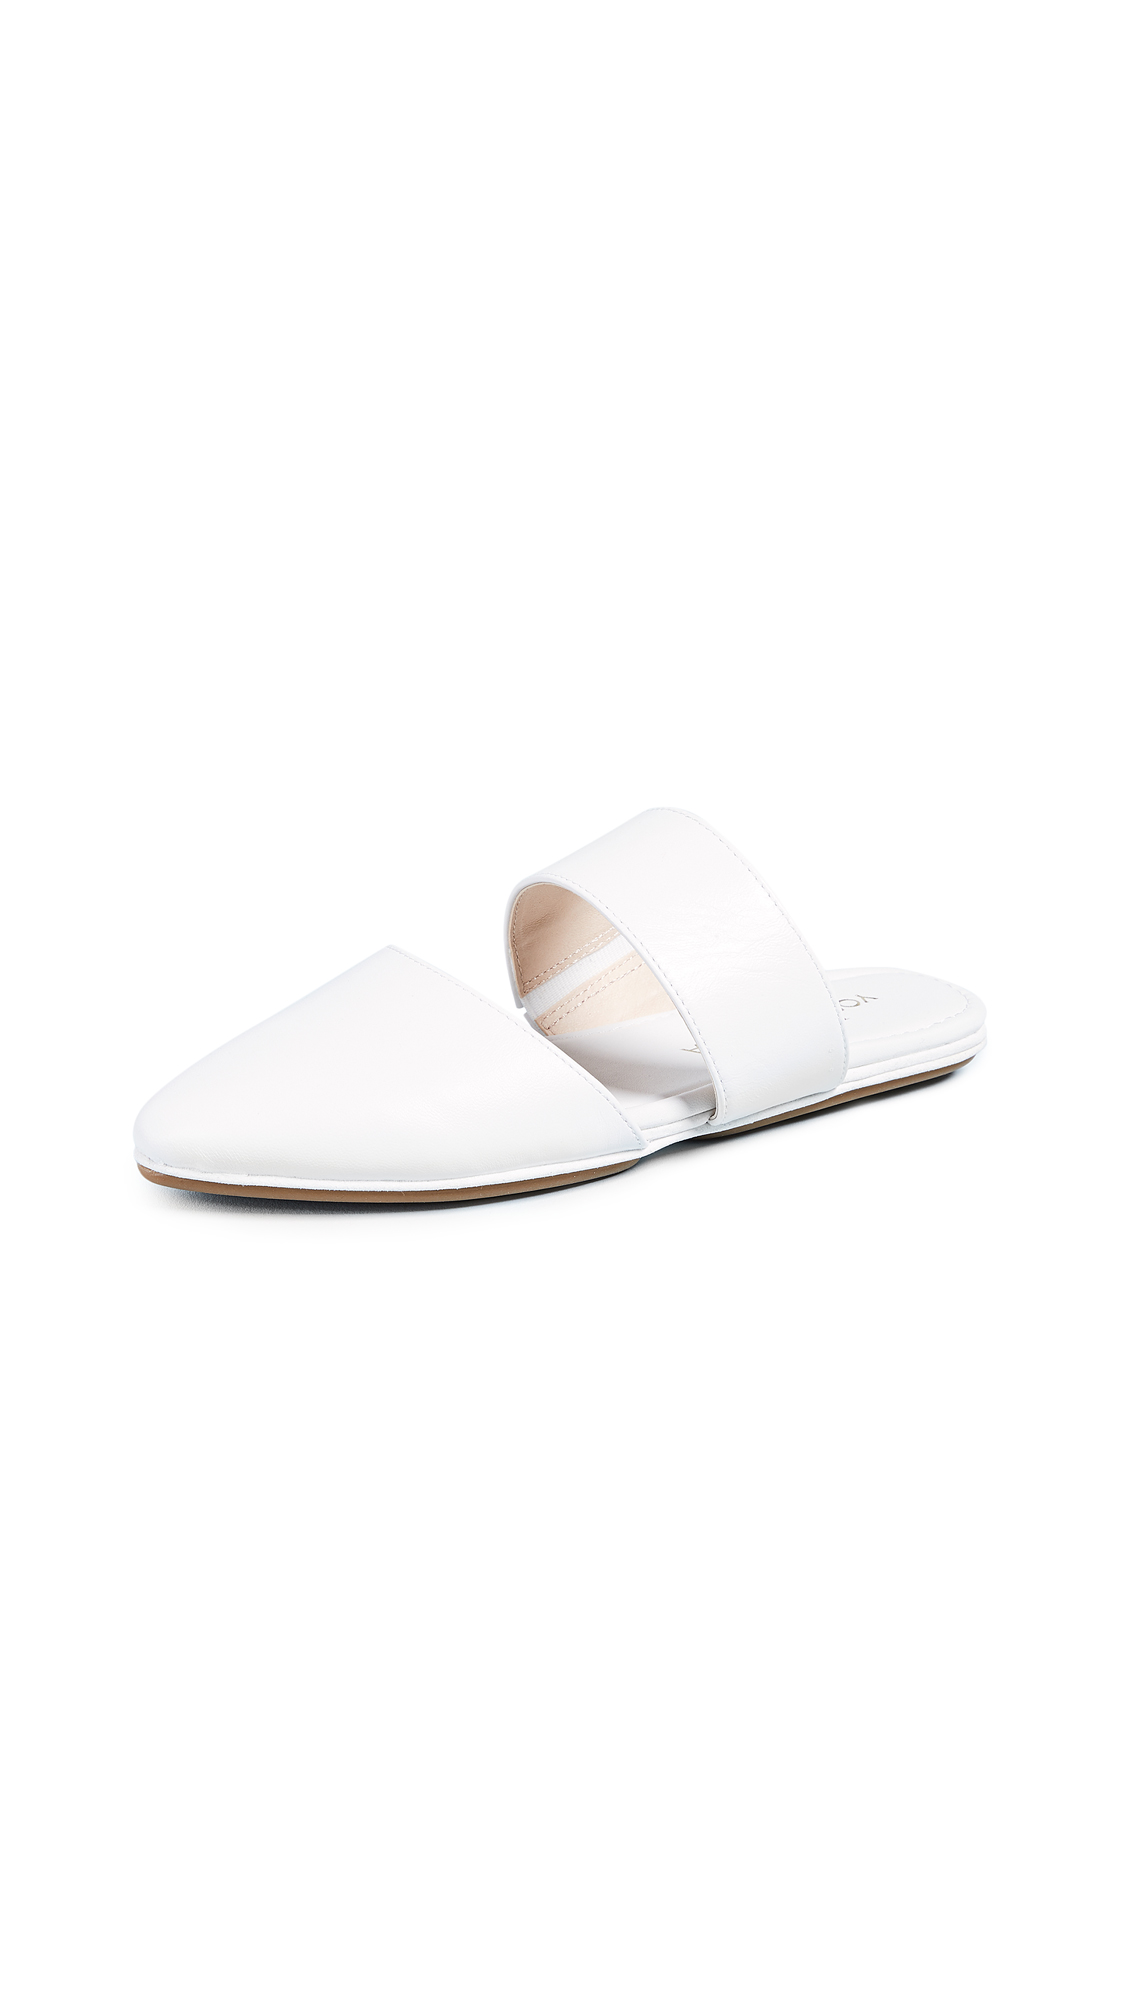 Yosi Samra Vicky Point Toe Mules In White